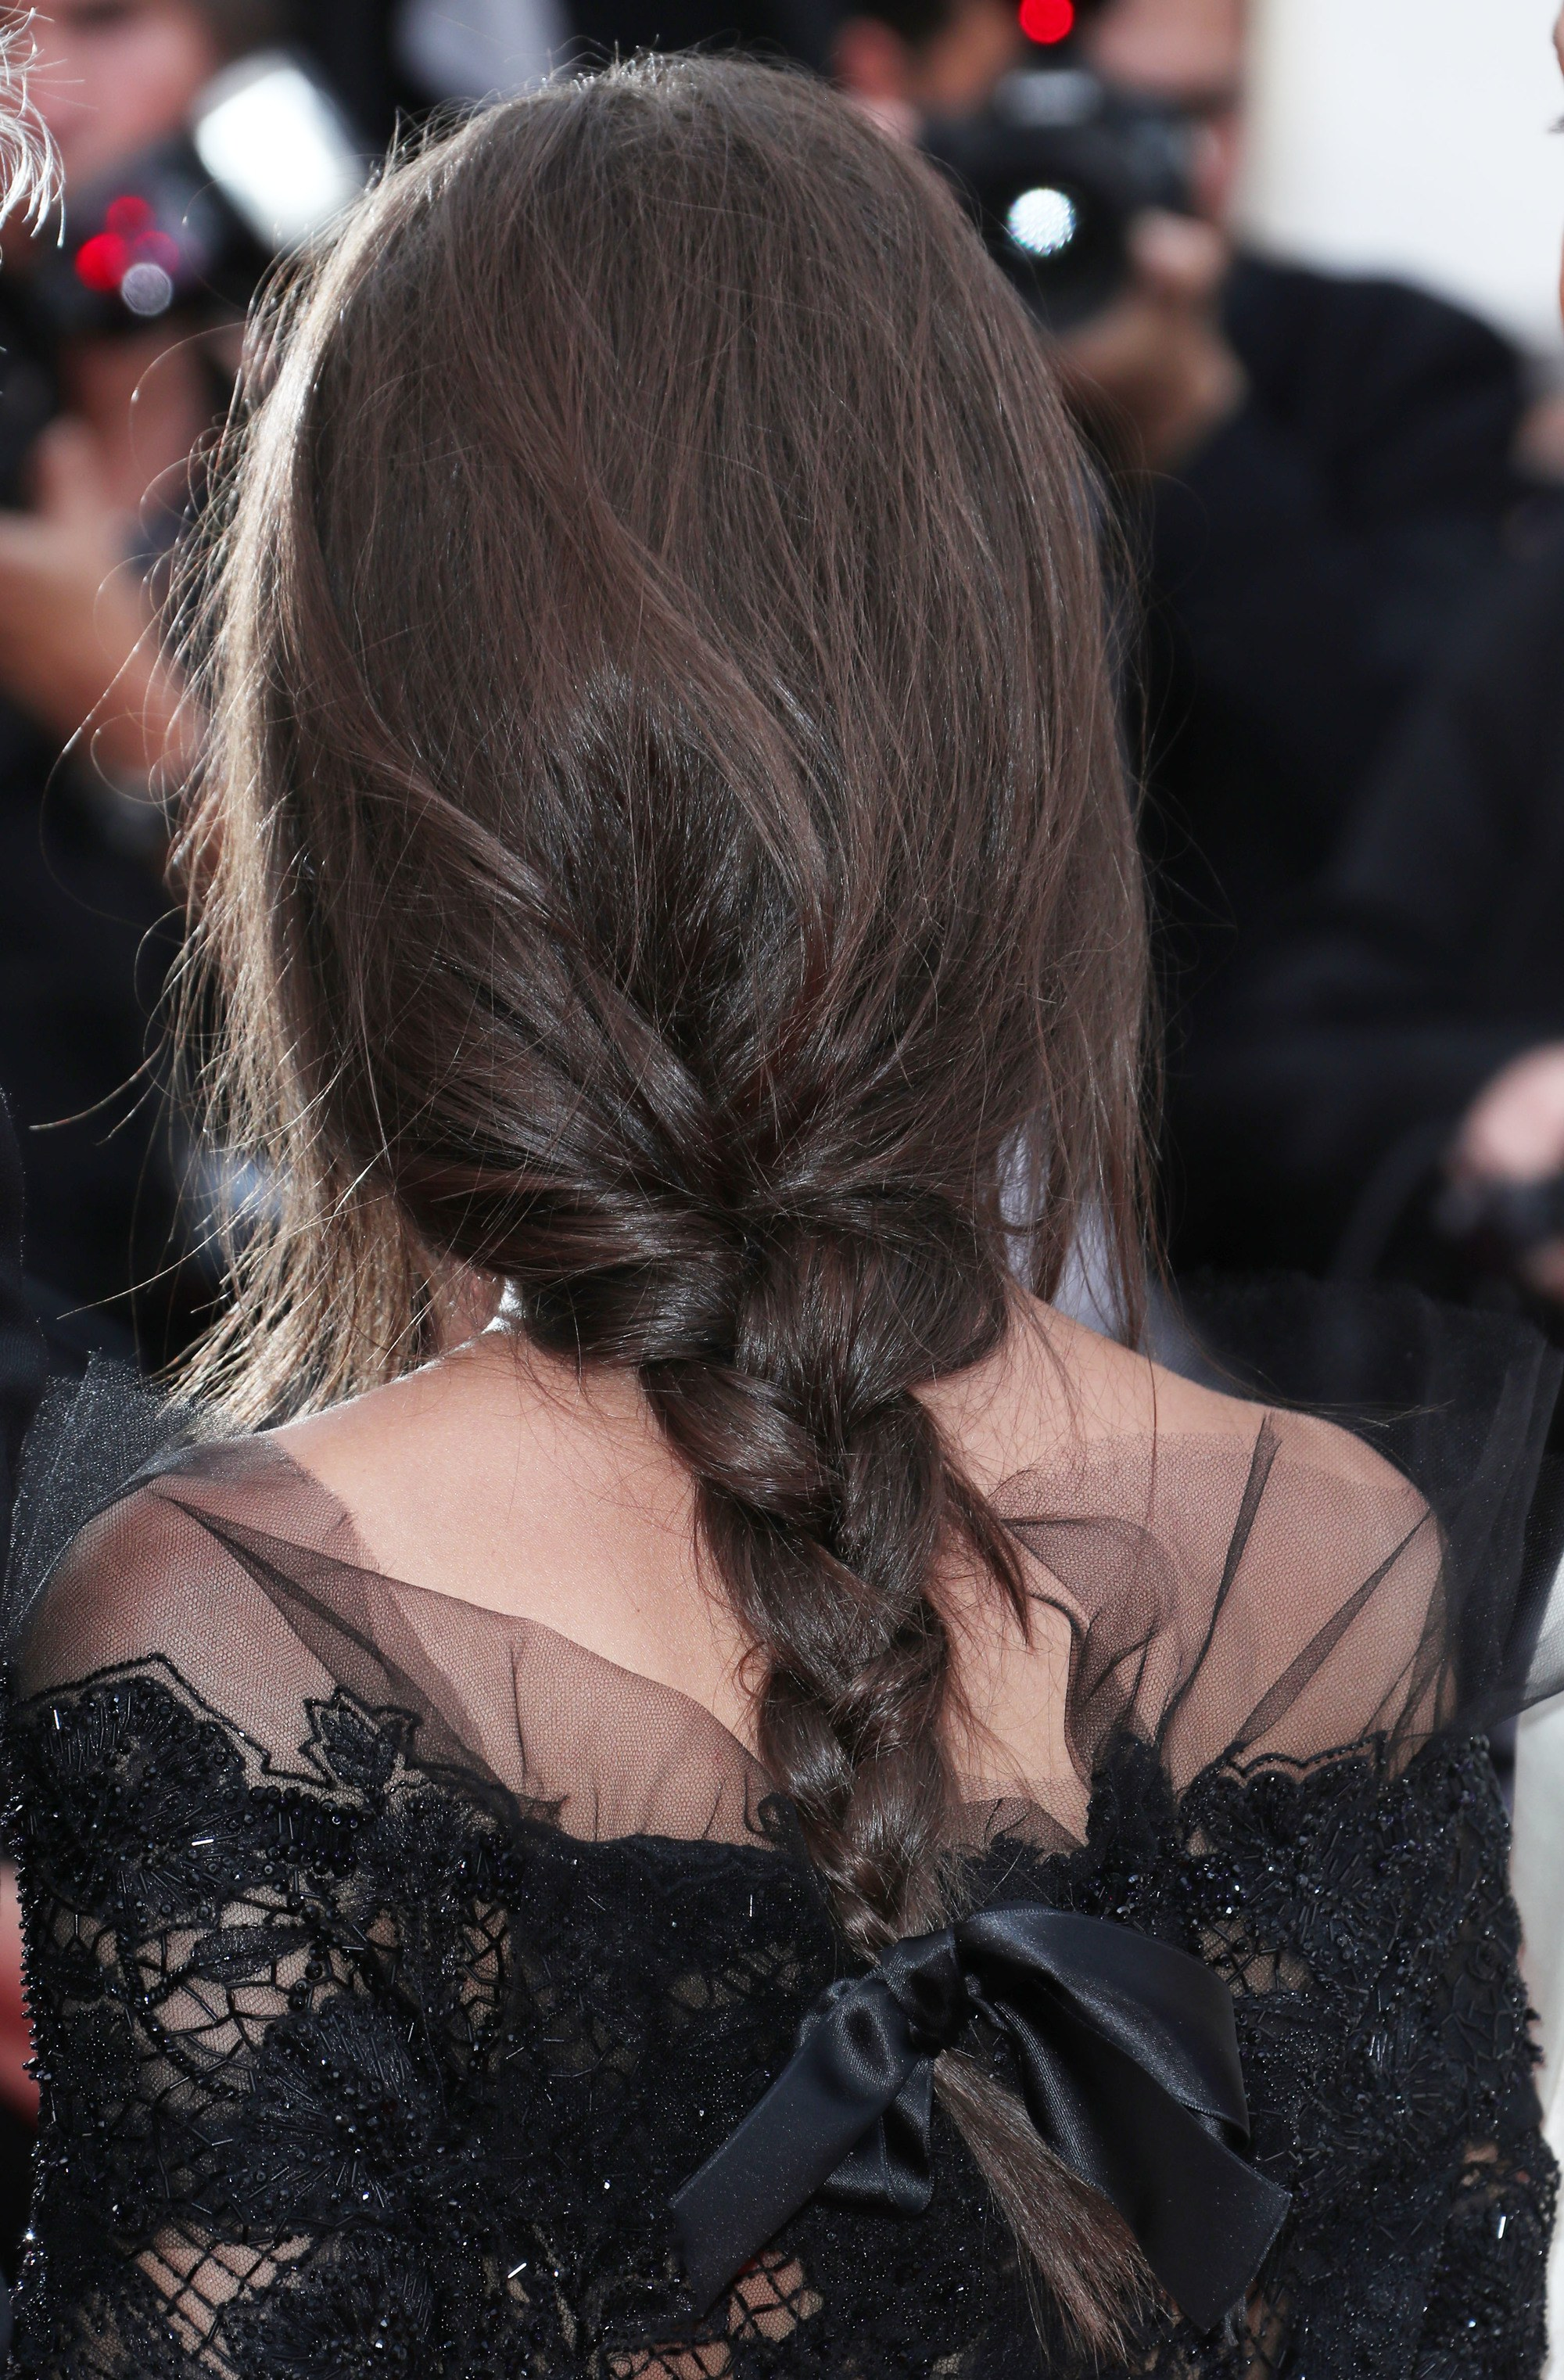 brunette with her hair in a braid with a black ribbon hair tie